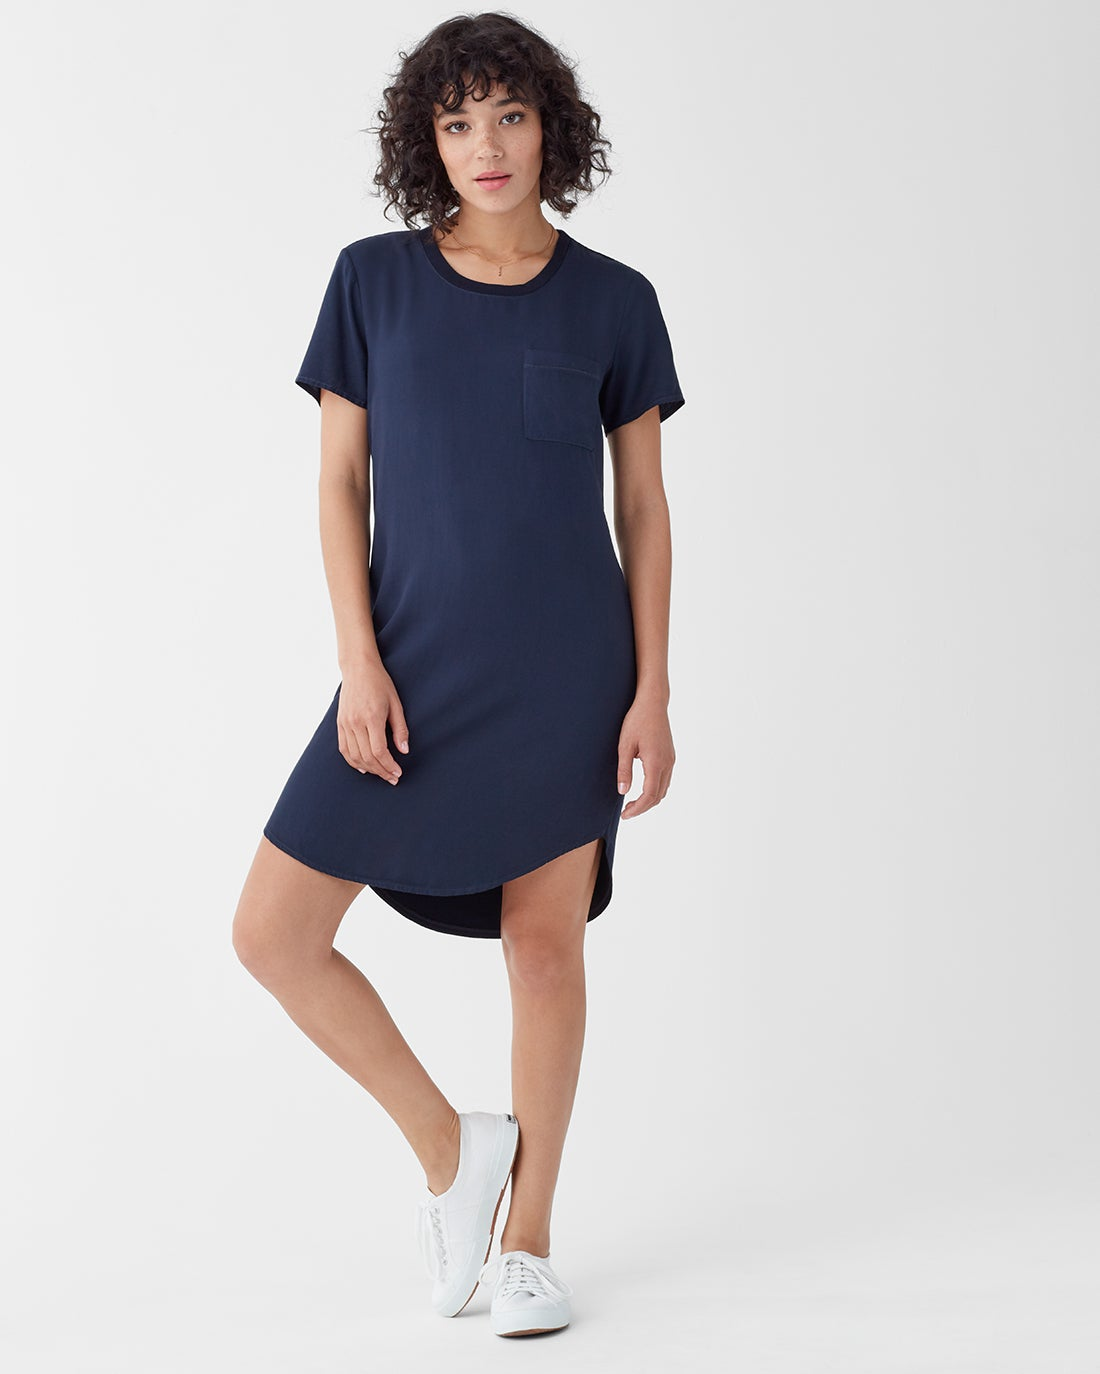 Splendid Women's Pocket Tee Dress